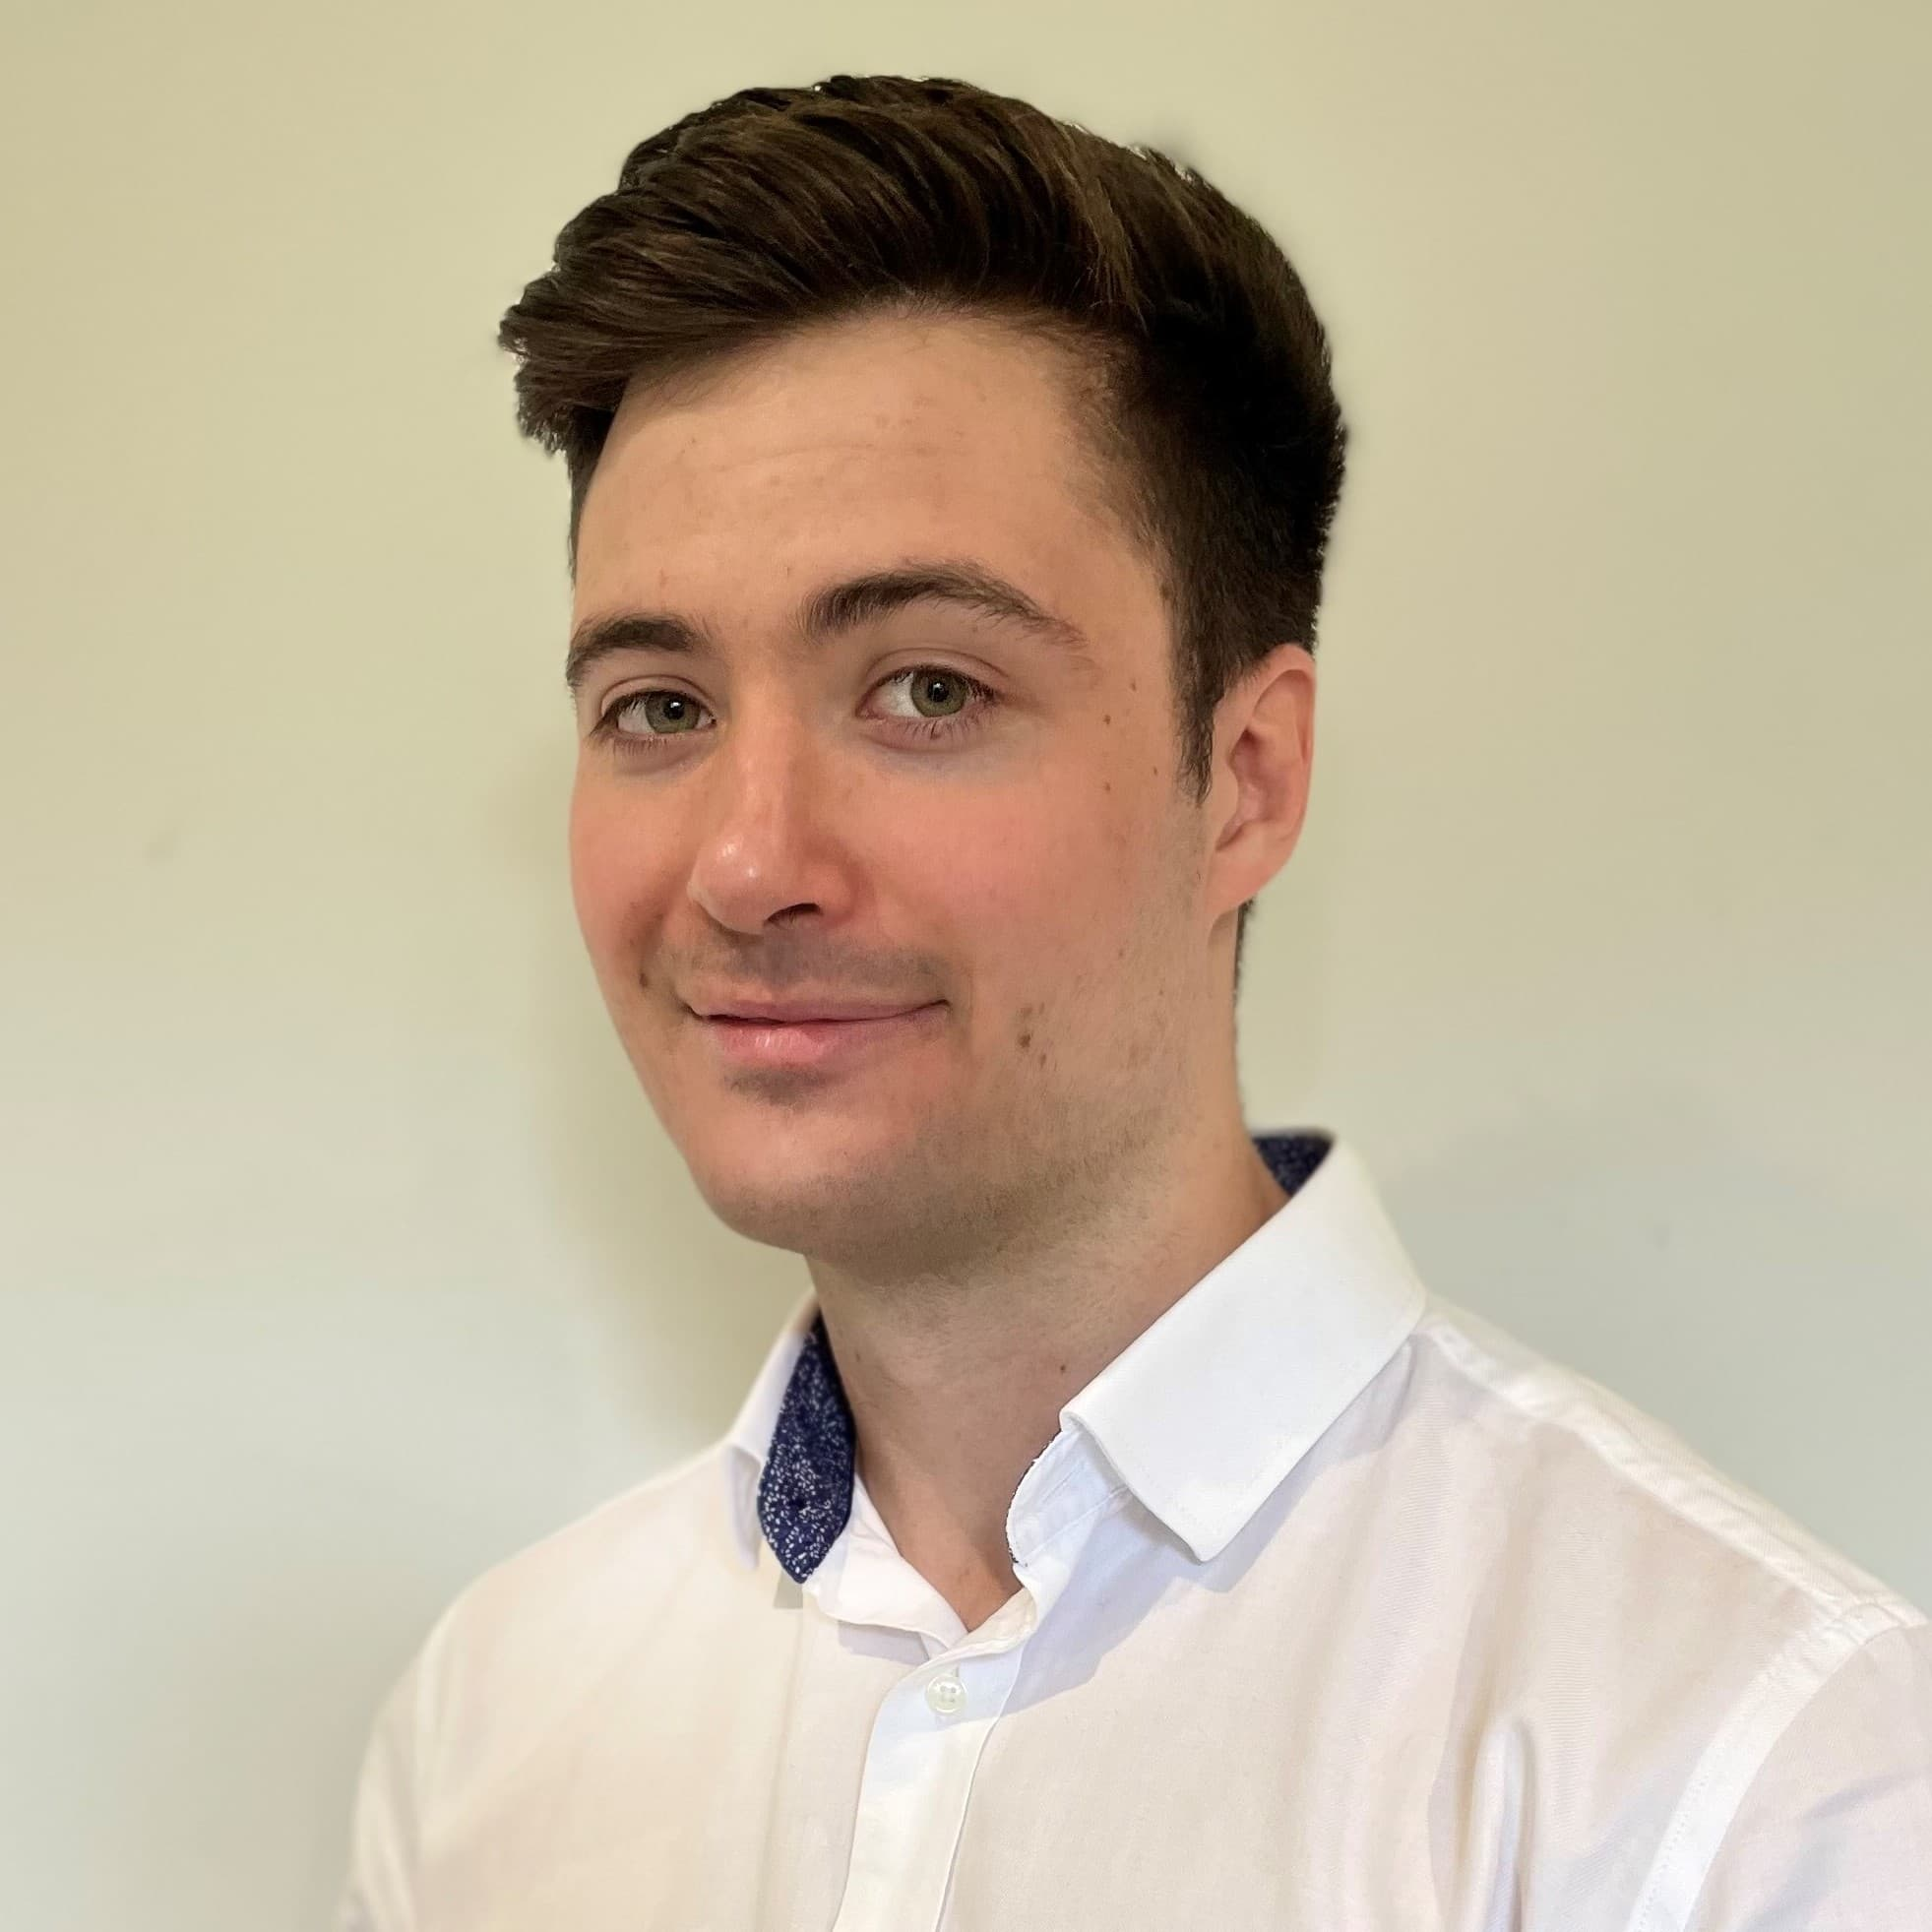 Image of Harry Stafford, Consultant of BoxLogic